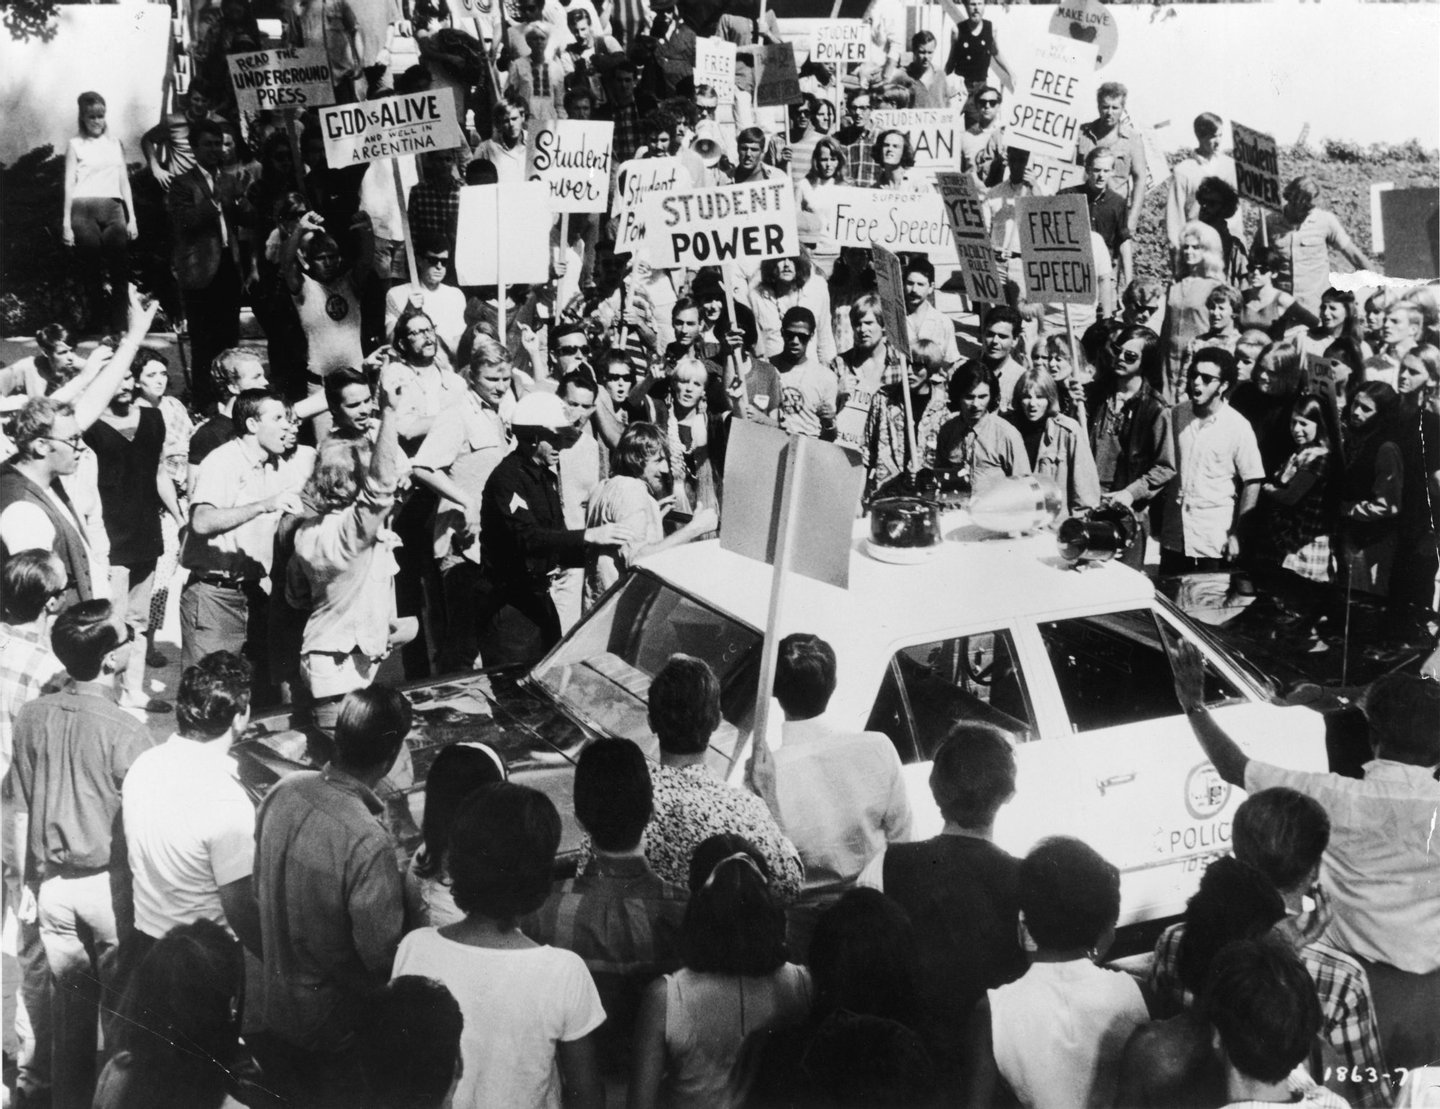 A police officer escorts a protestor to a squad car surrounded by dozens of anti-Vietnam War demonstrators outside the 1968 Democratic National Convention, Chicago, Illinois, August 1968. (Photo by Hulton Archive/Getty Images)